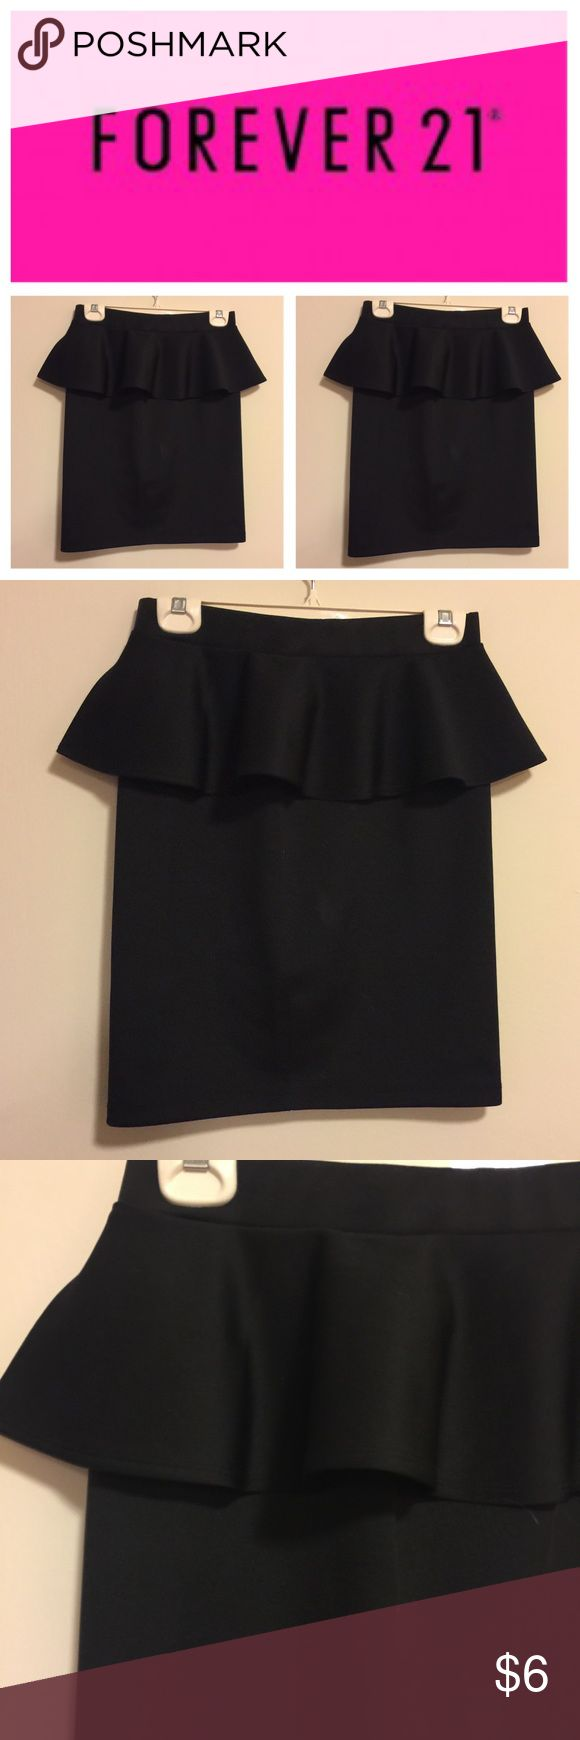 Forever 21 peplum skirt Black. Size large. Never worn. Measures about 21 inches in length. NO TRADES, OFFERS OR MODELING!!! Forever 21 Skirts Pencil